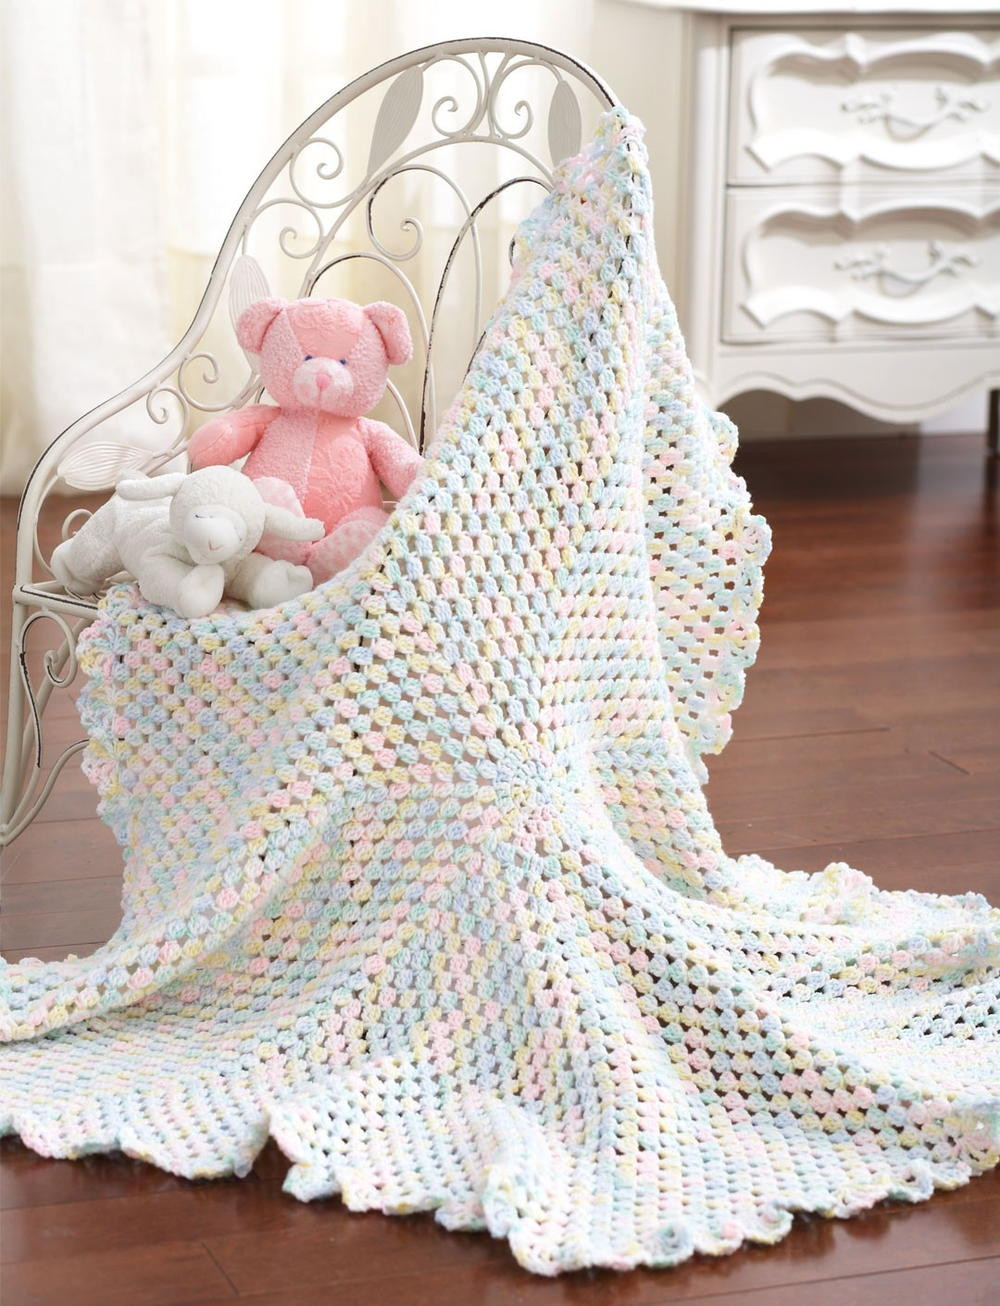 Crochet Baby Afghan Unique Marshmallow Baby Blanket Of Top 41 Models Crochet Baby Afghan